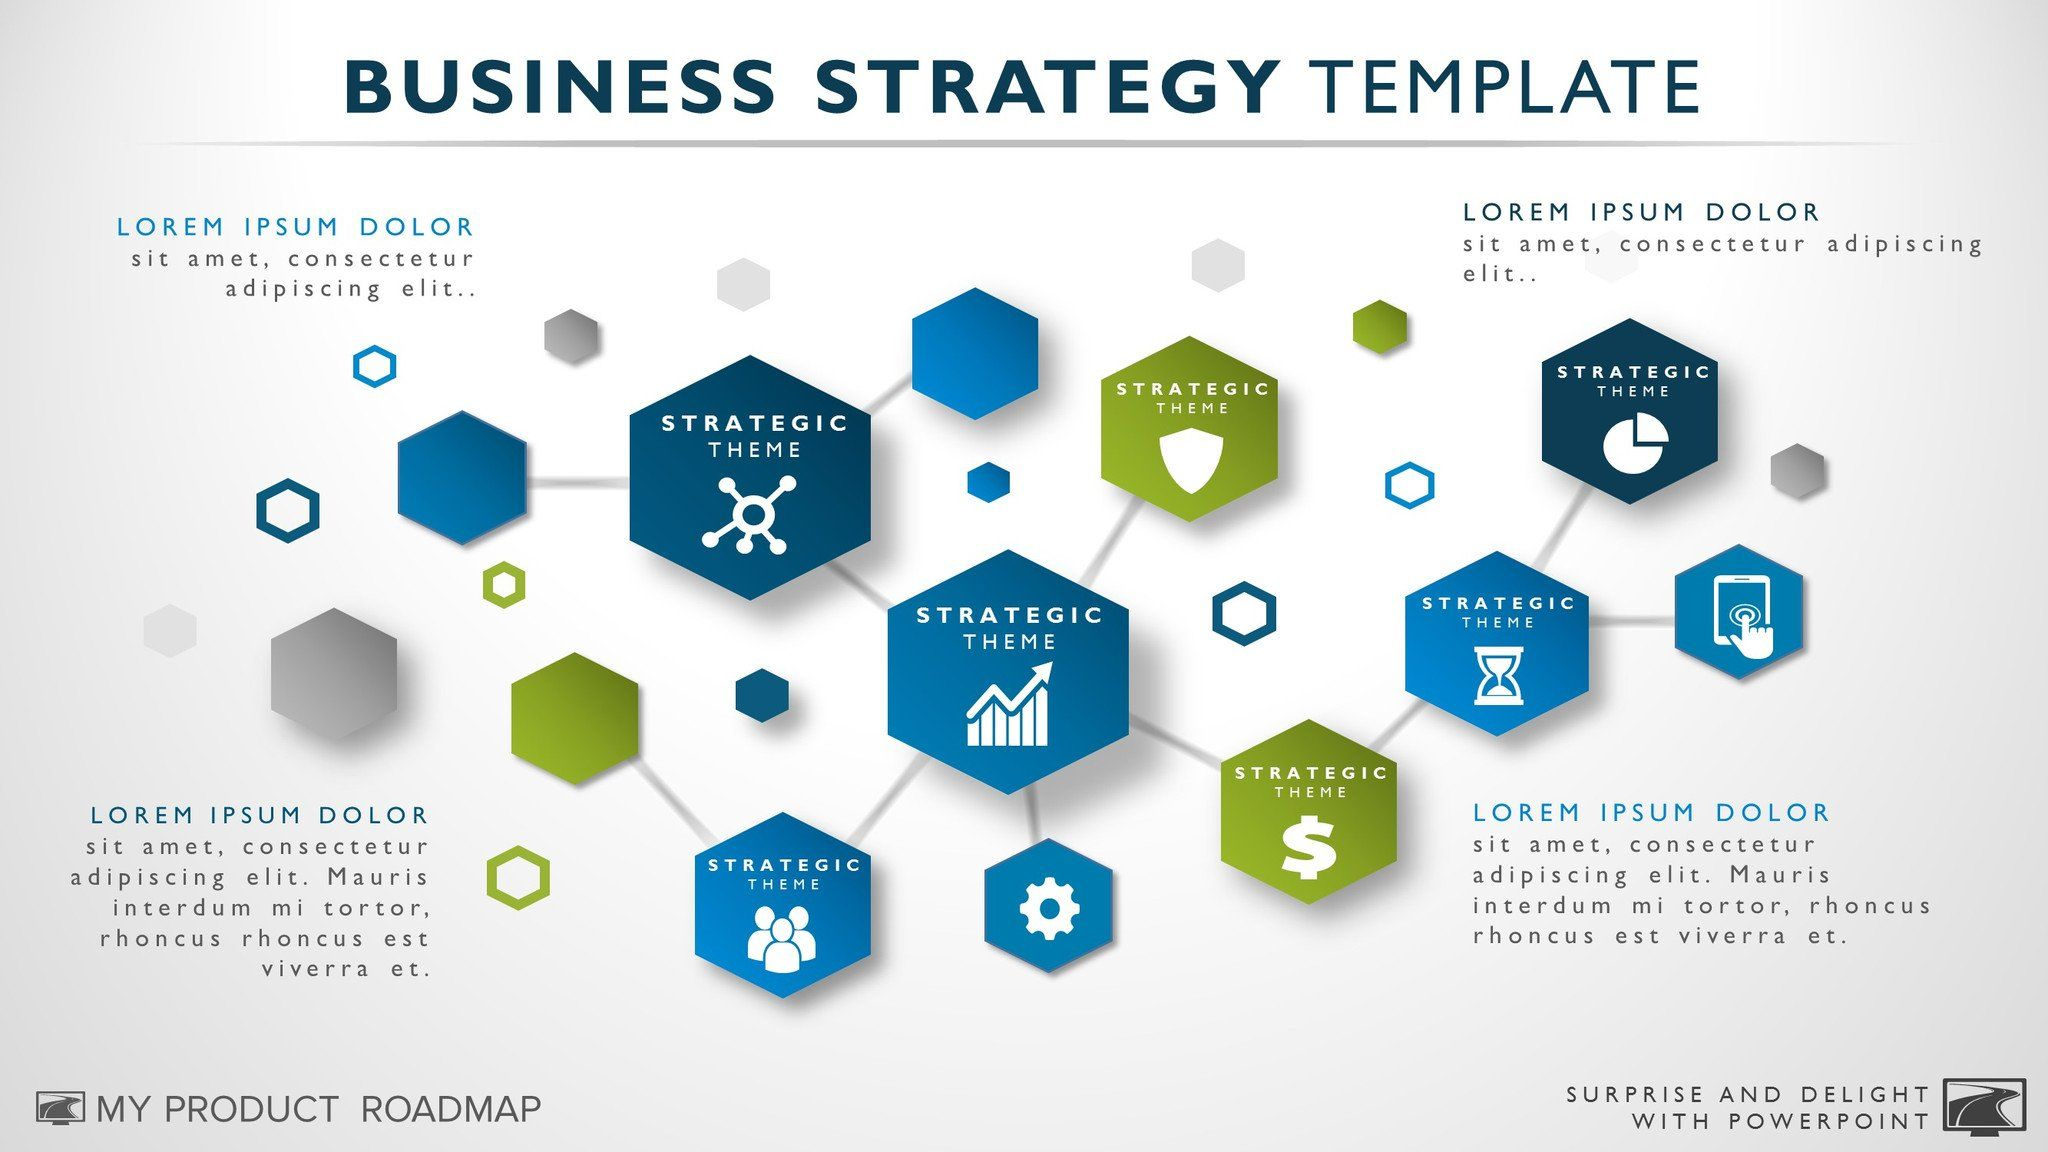 Business Strategy Template Templates, Business strategy